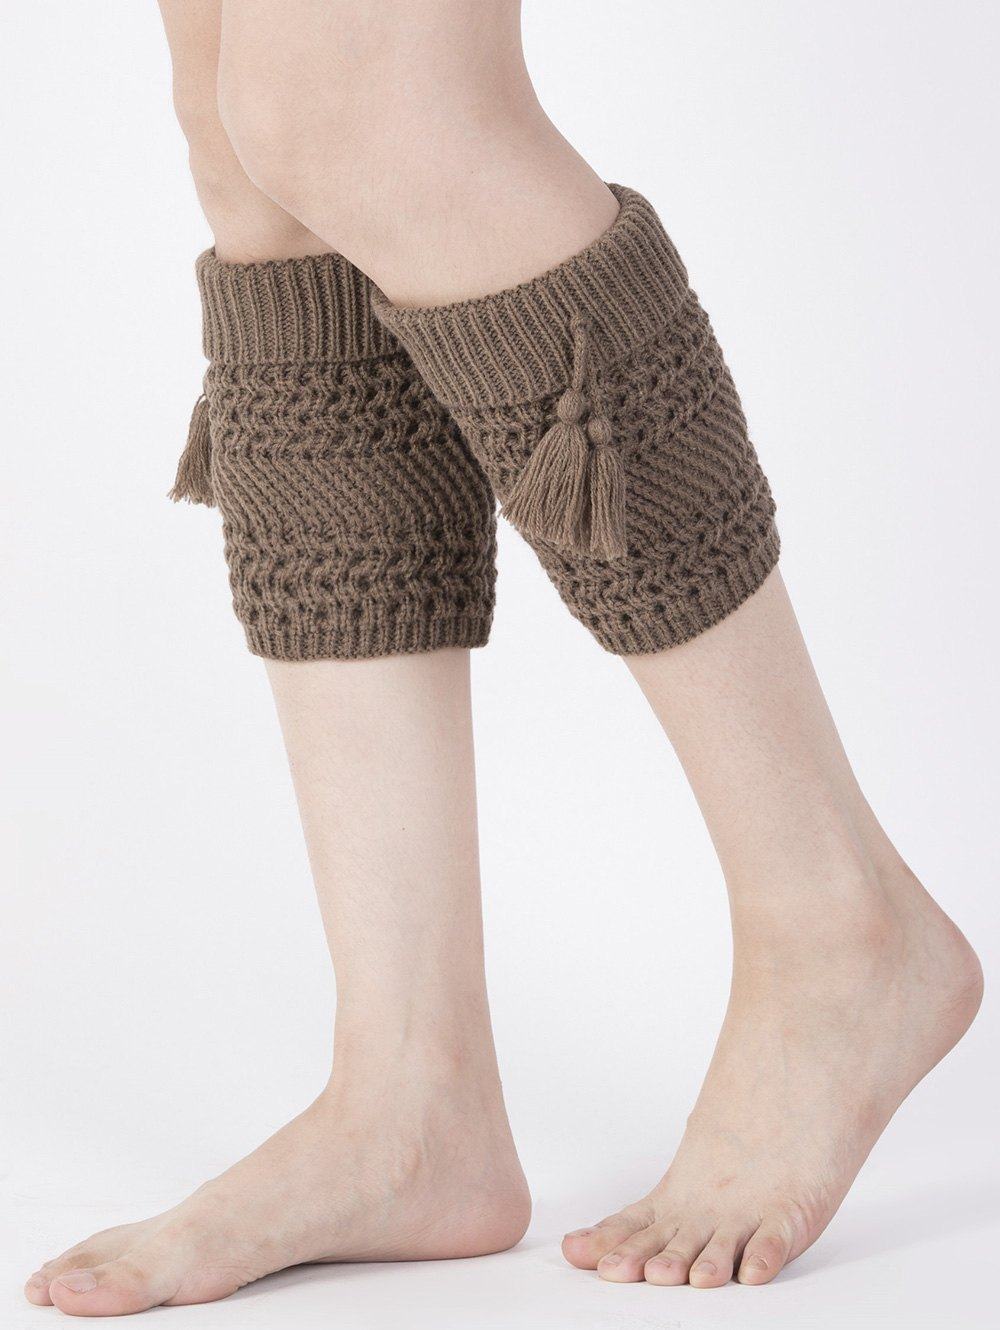 Tassel Pendant Flanging Knitted Boot Cuffs